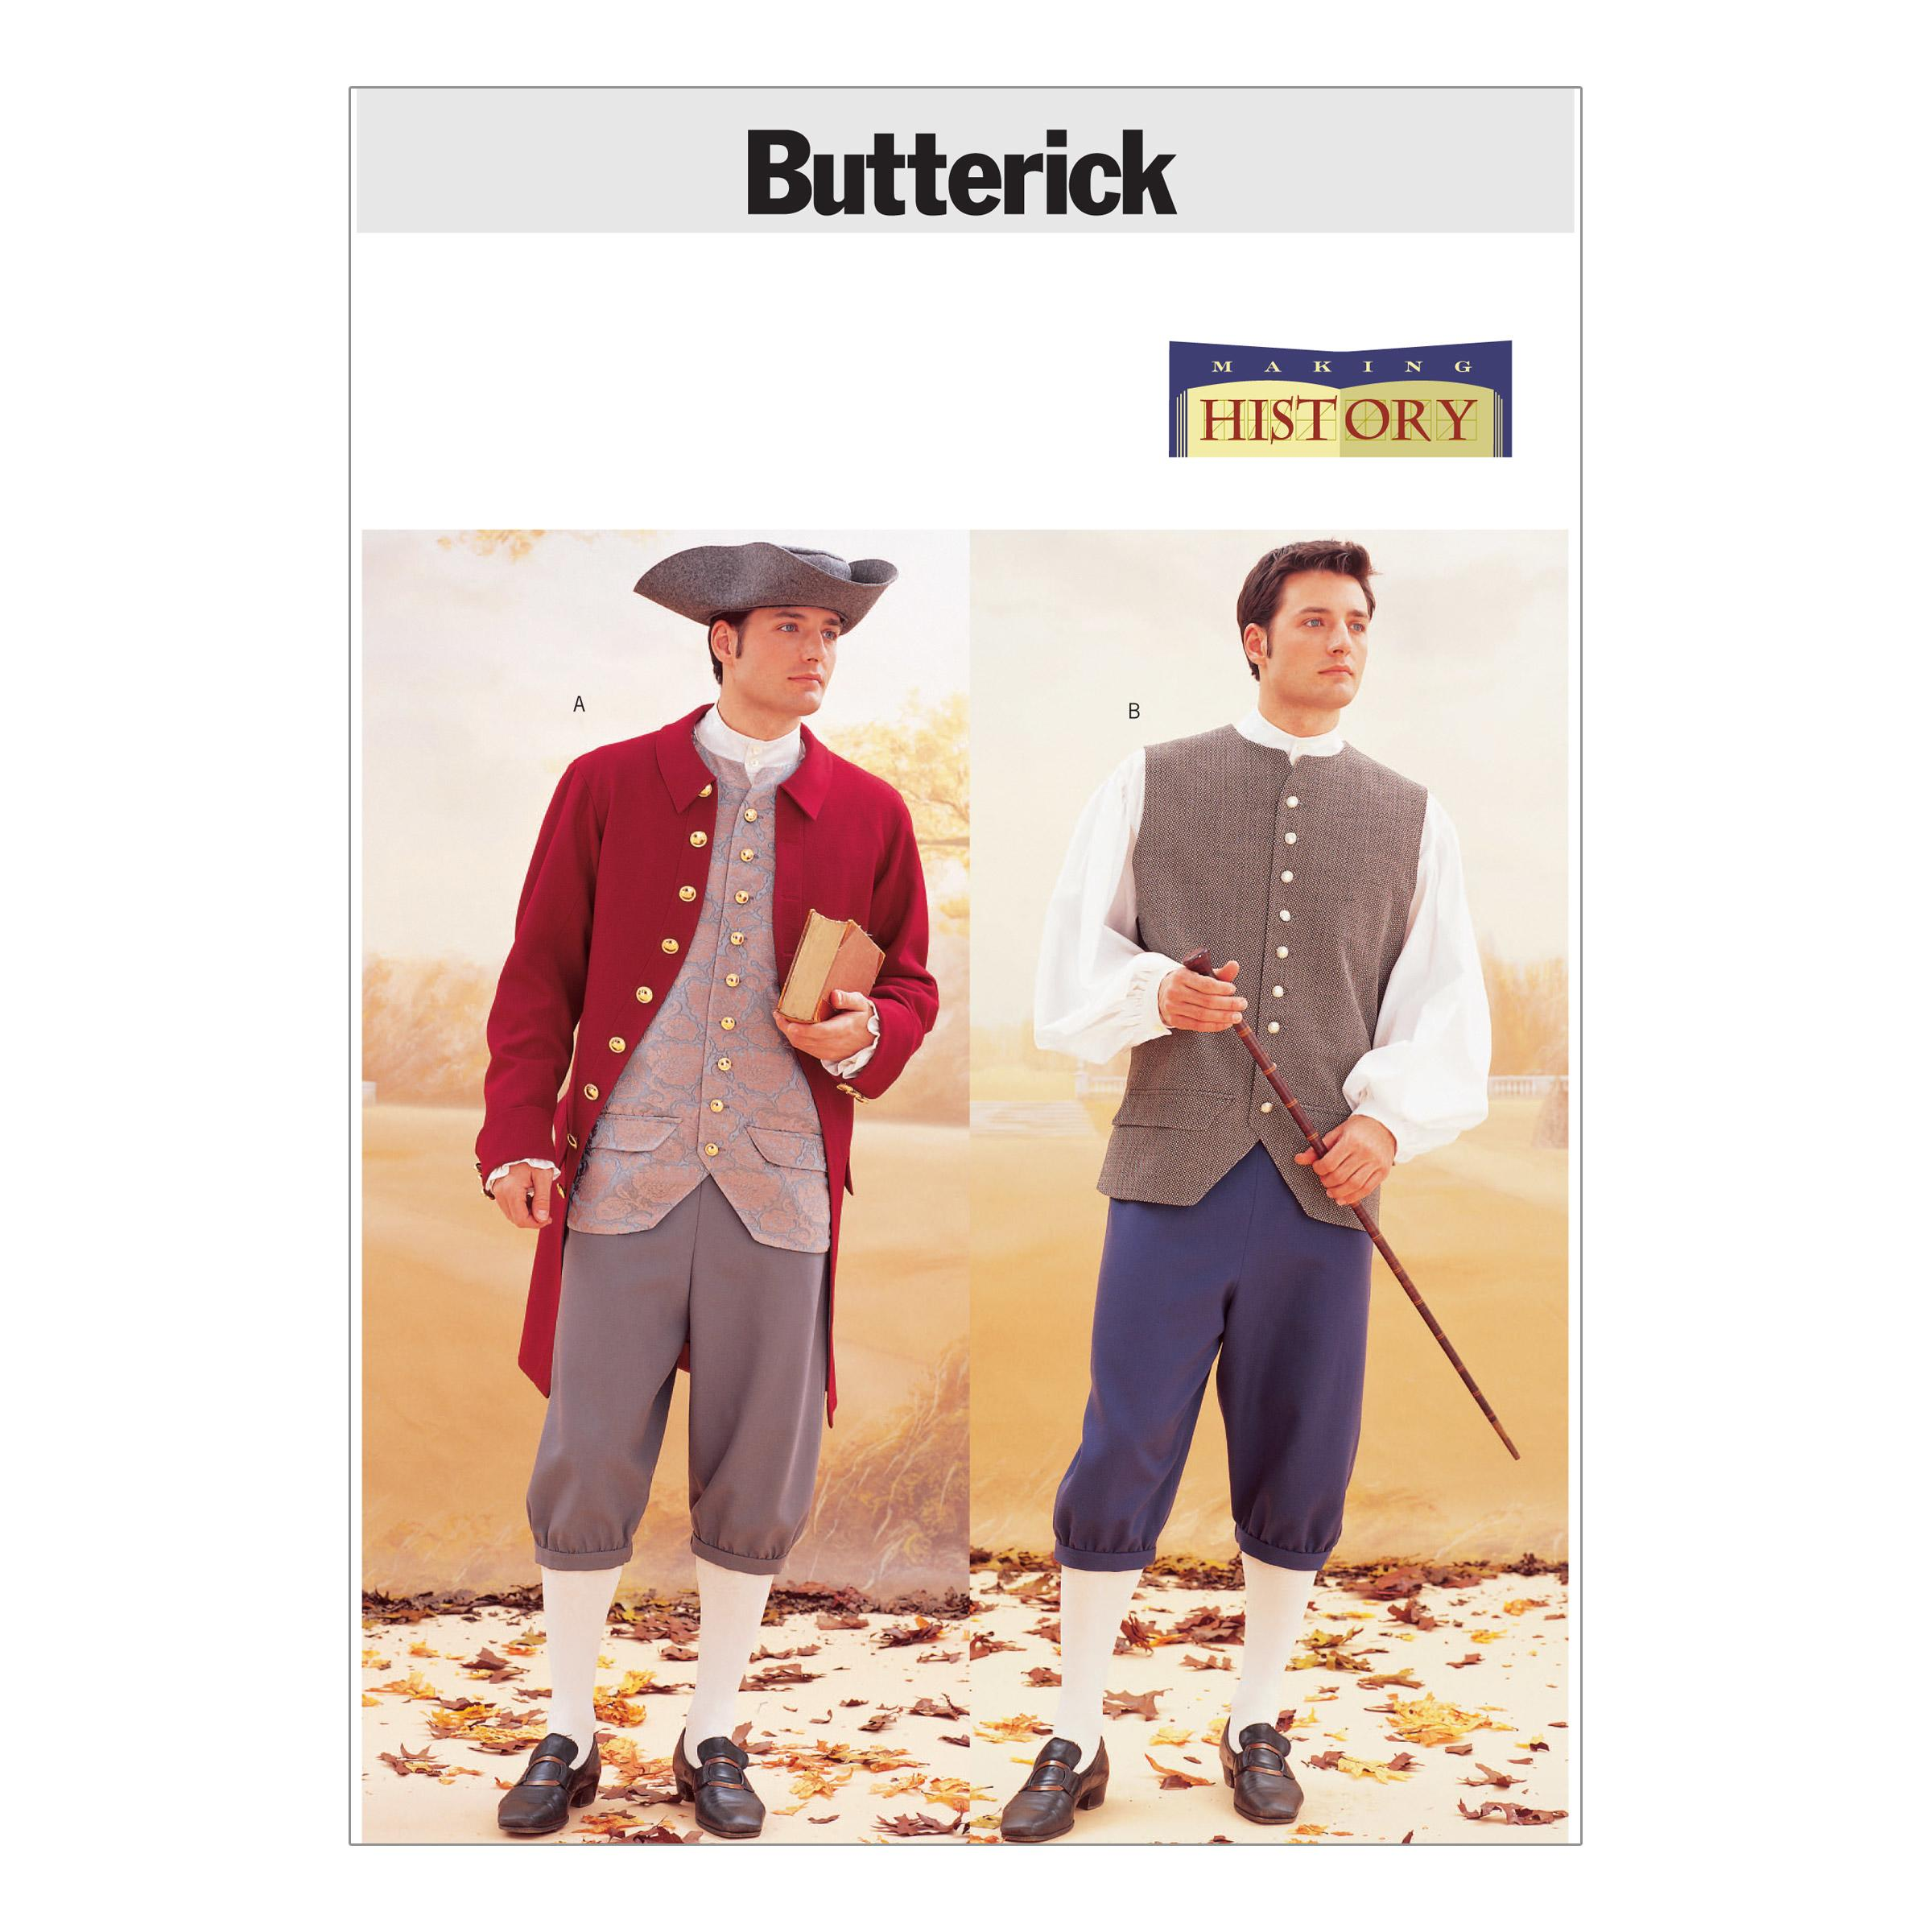 Butterick B3072 Historical Costume (Coat, Vest, Shirt, Pants and Hat)